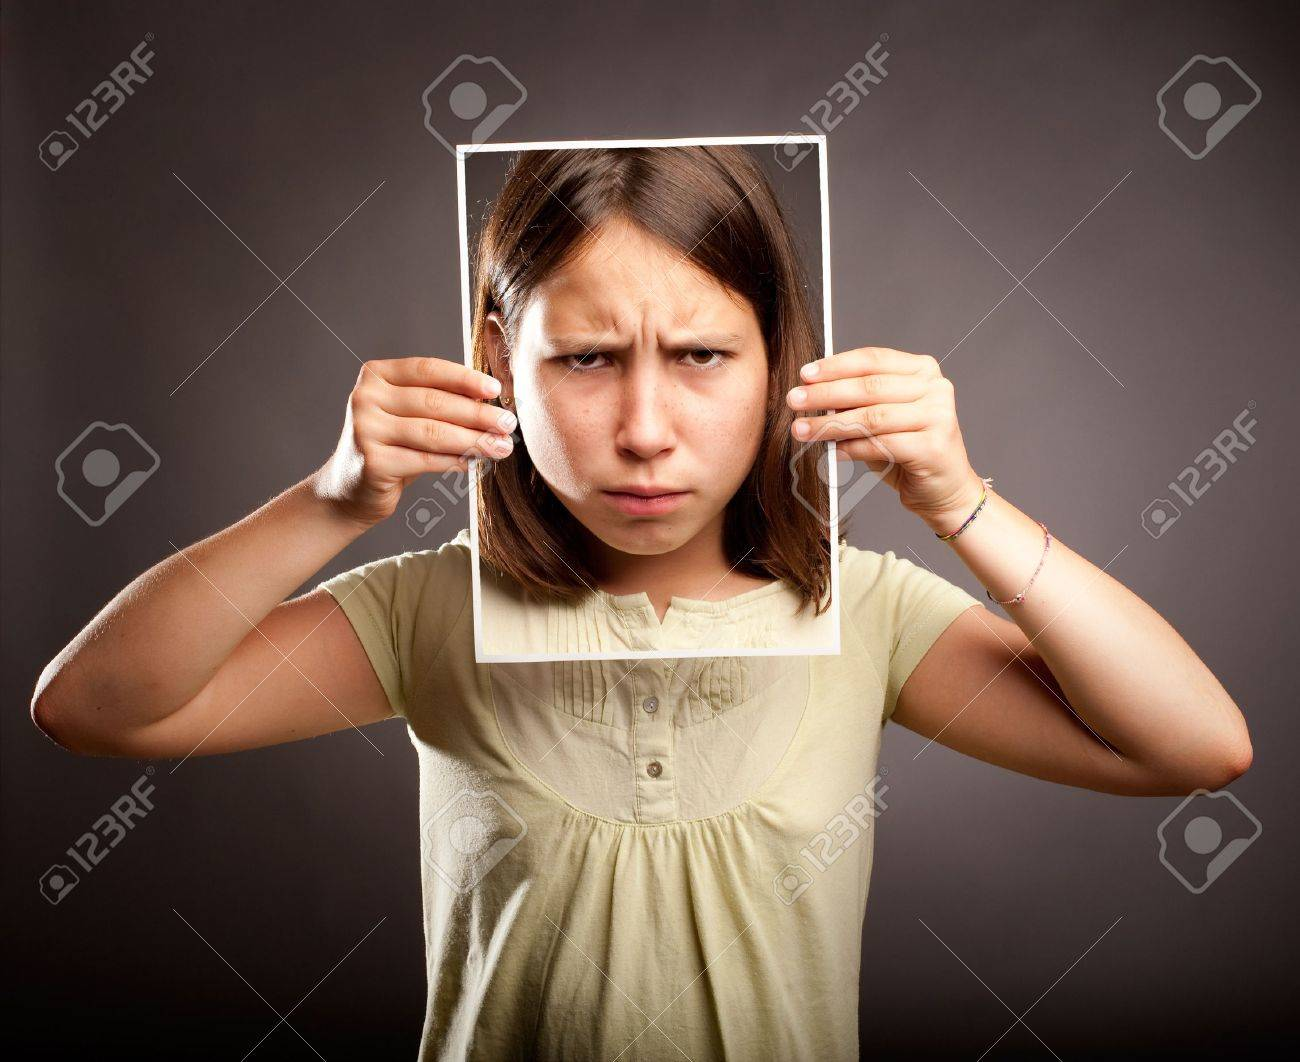 portrait of young girl holding a photography of herself with sad expression Stock Photo - 21626618